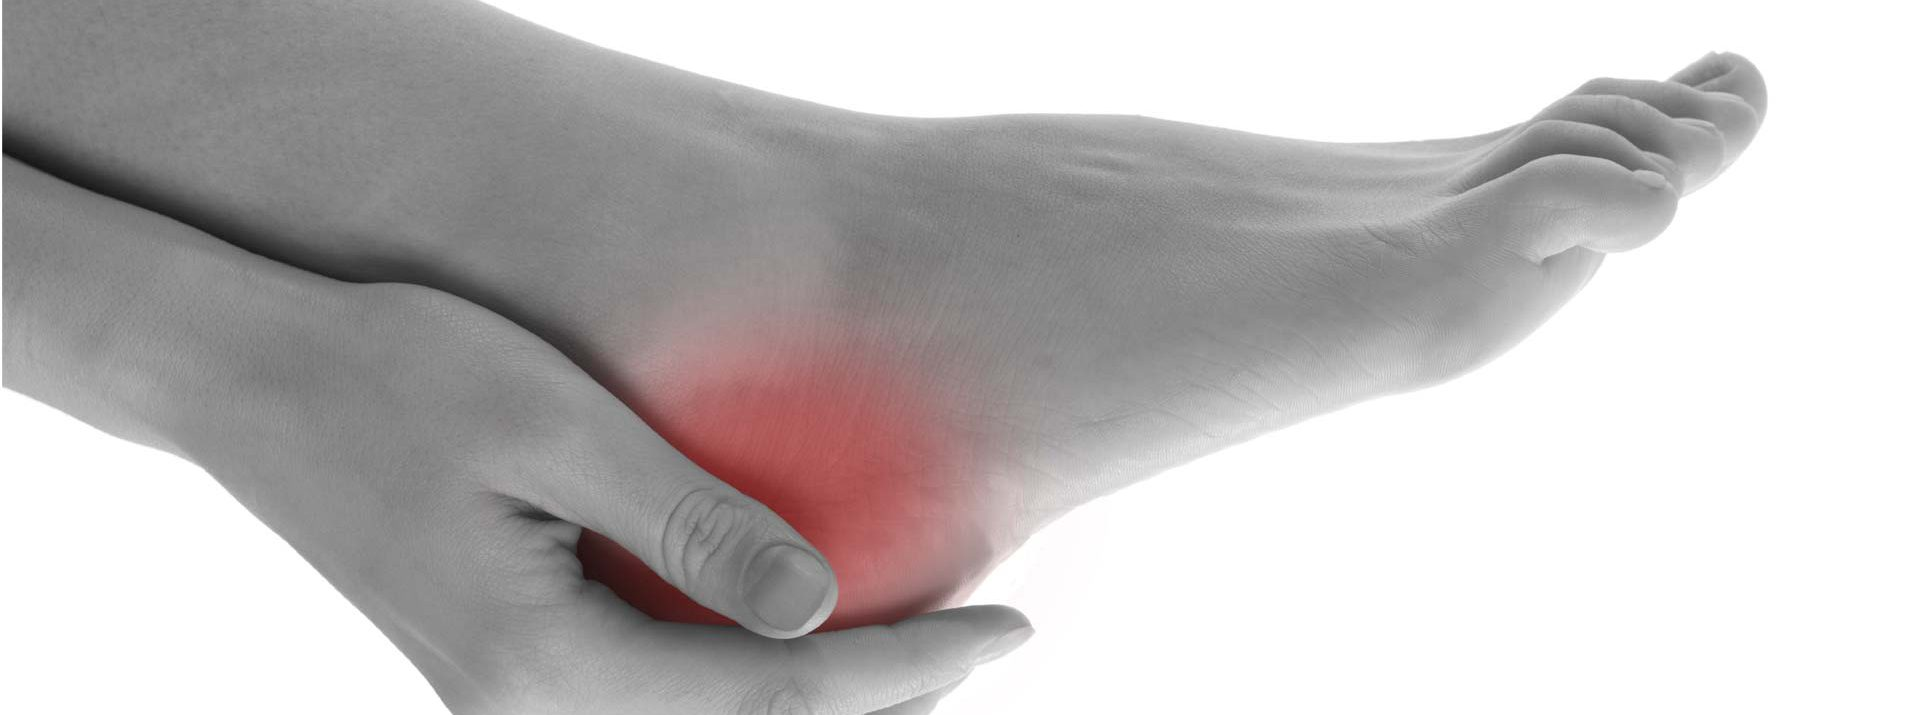 HEEL PAIN AFFECTING YOUR DAY?